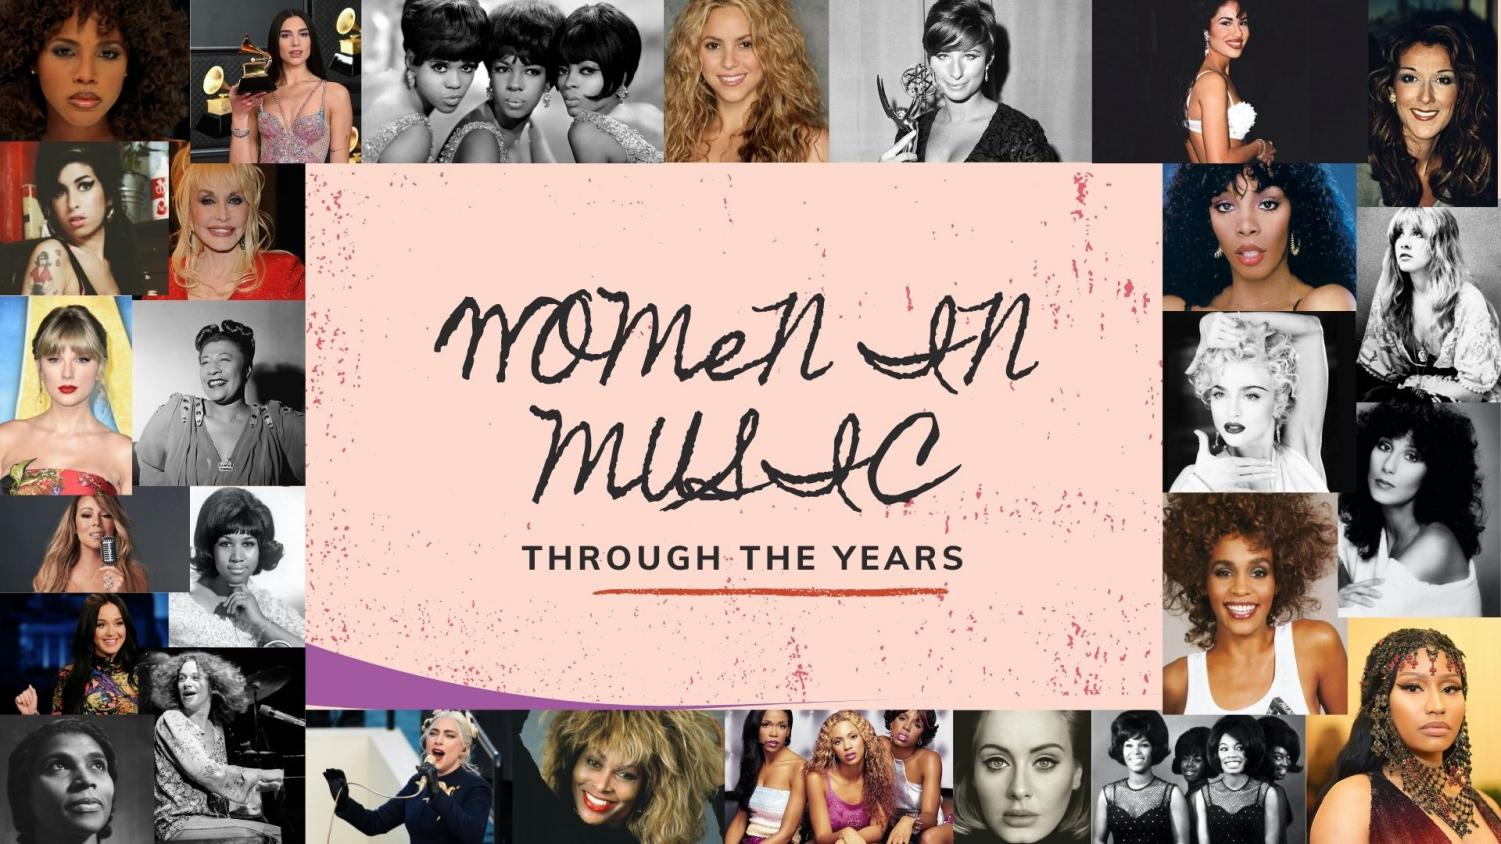 Women in Music: Women are overcoming adversity, gaining ground, and spreading positivity in the music industry